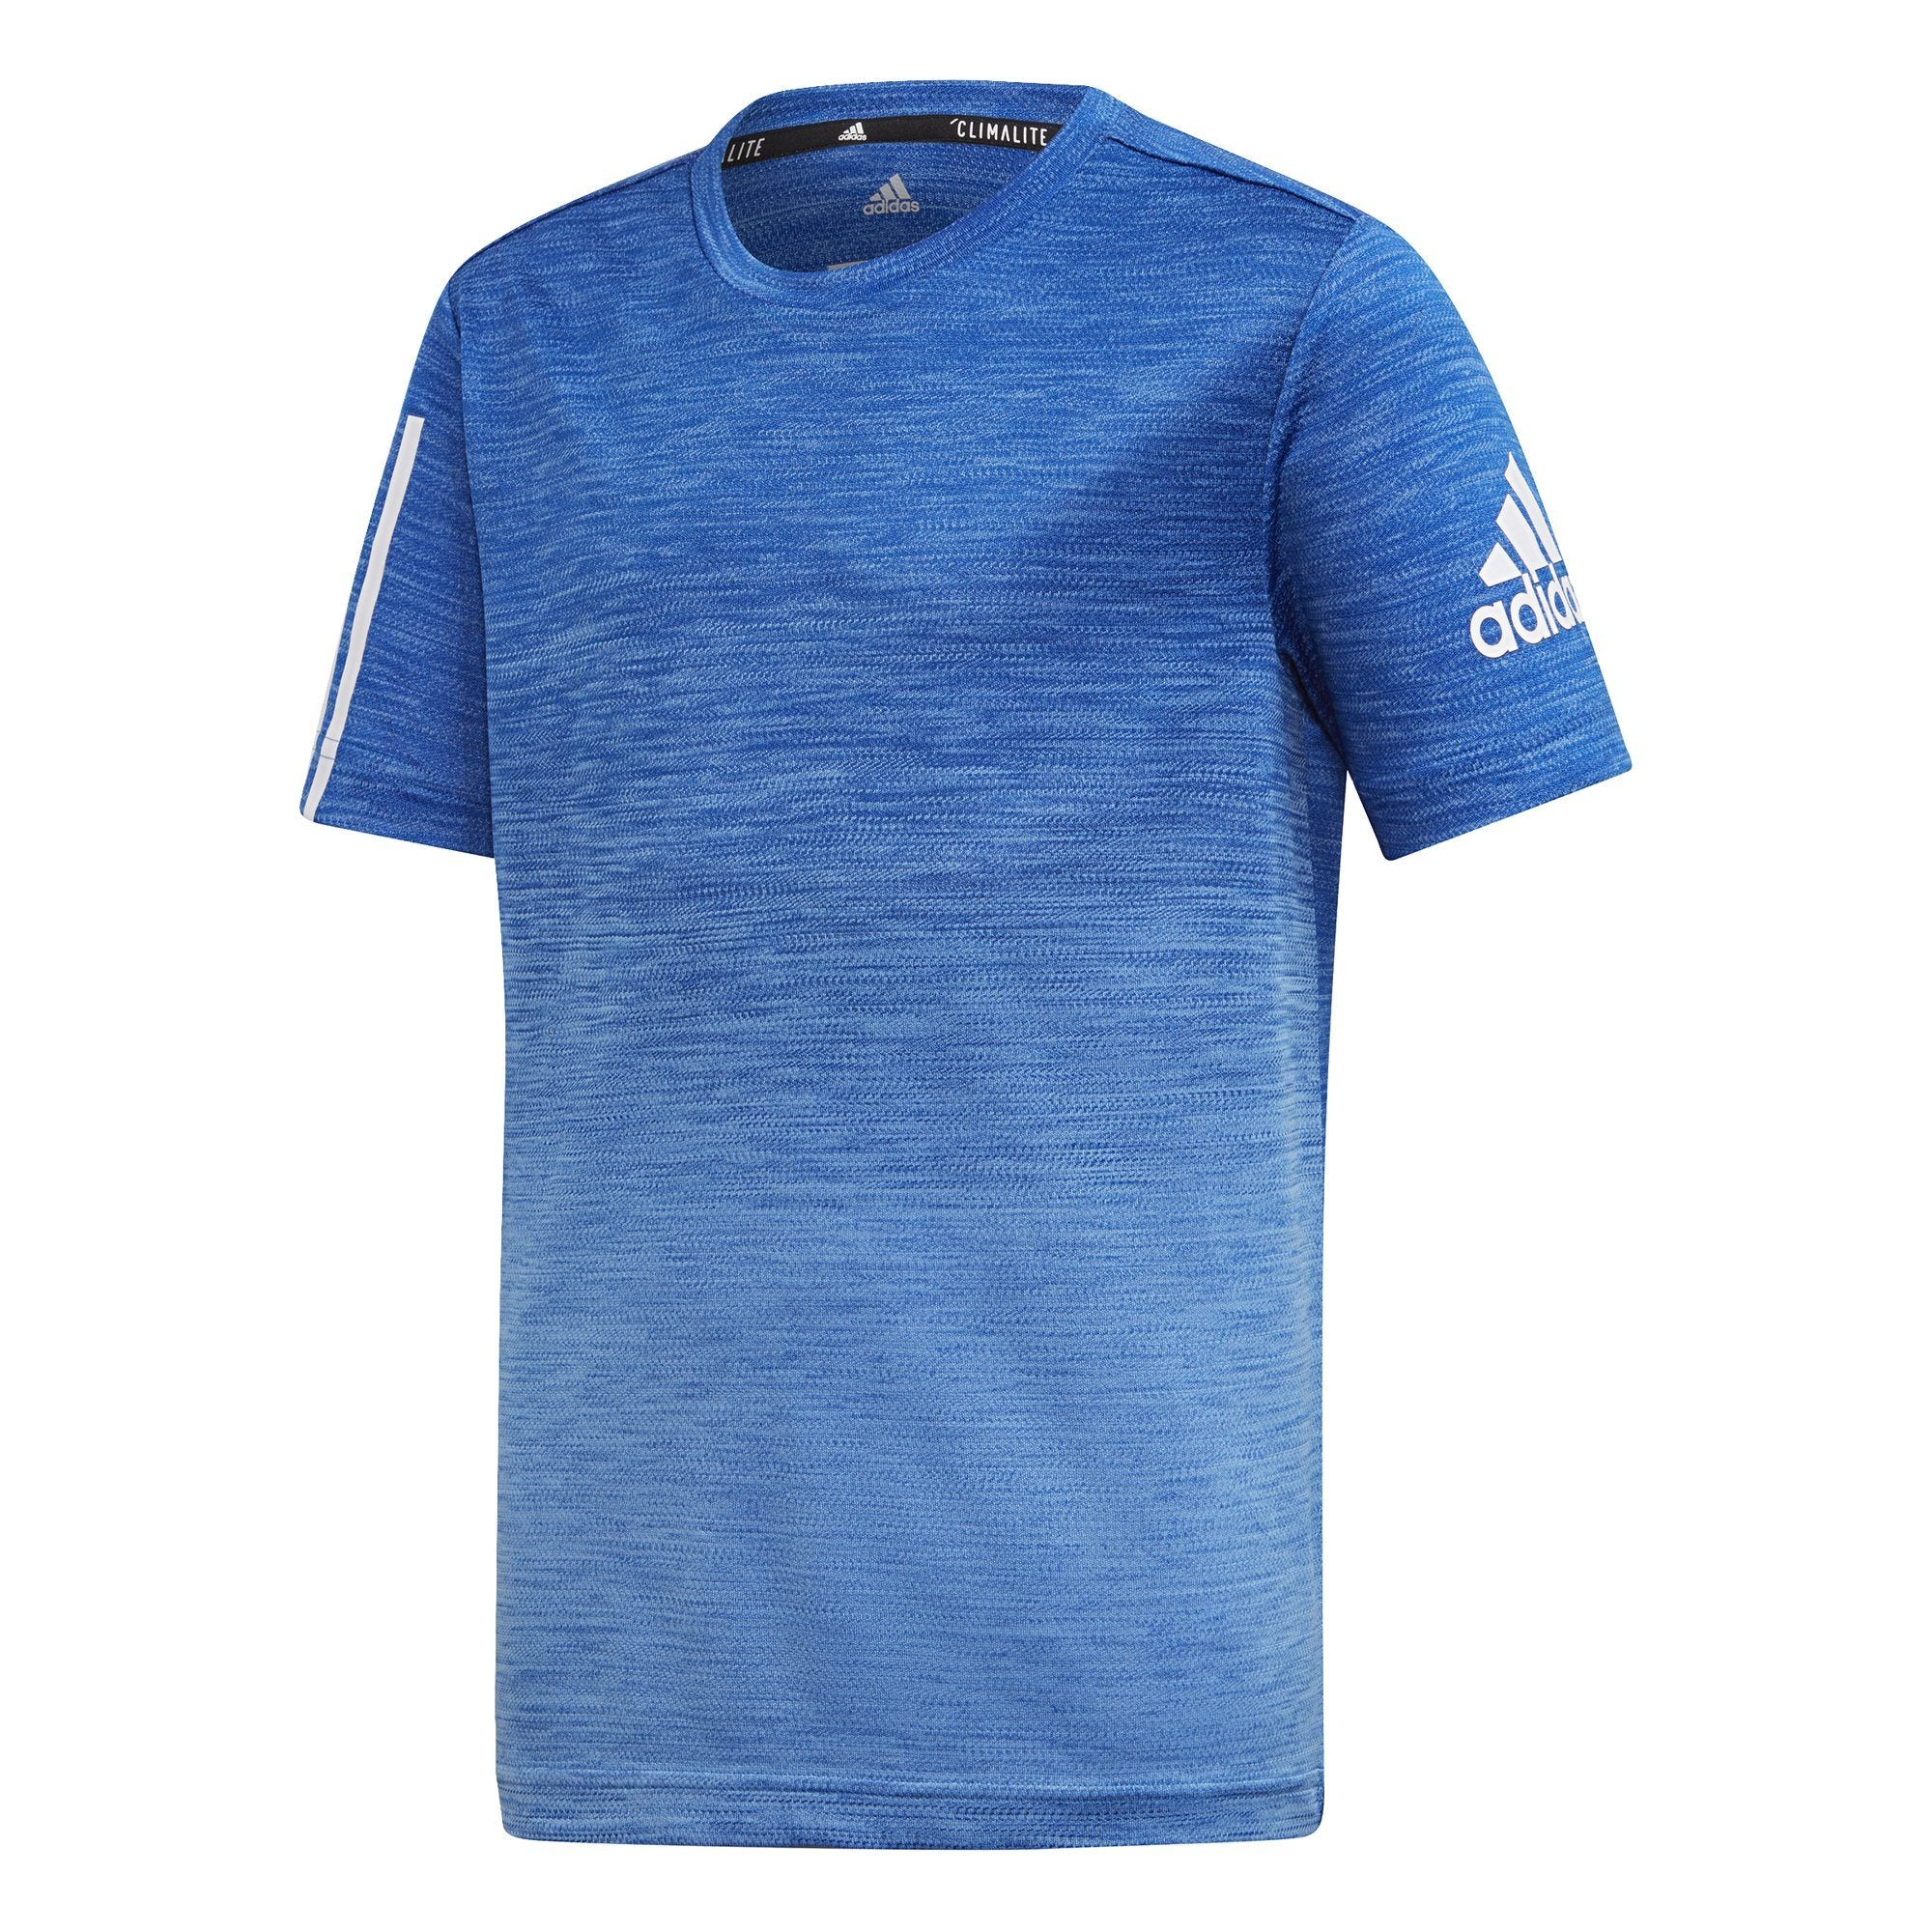 Adidas Boys Gradient Tee - real blue/collegiate royal/white SP-APPARELTEES-KIDS Adidas